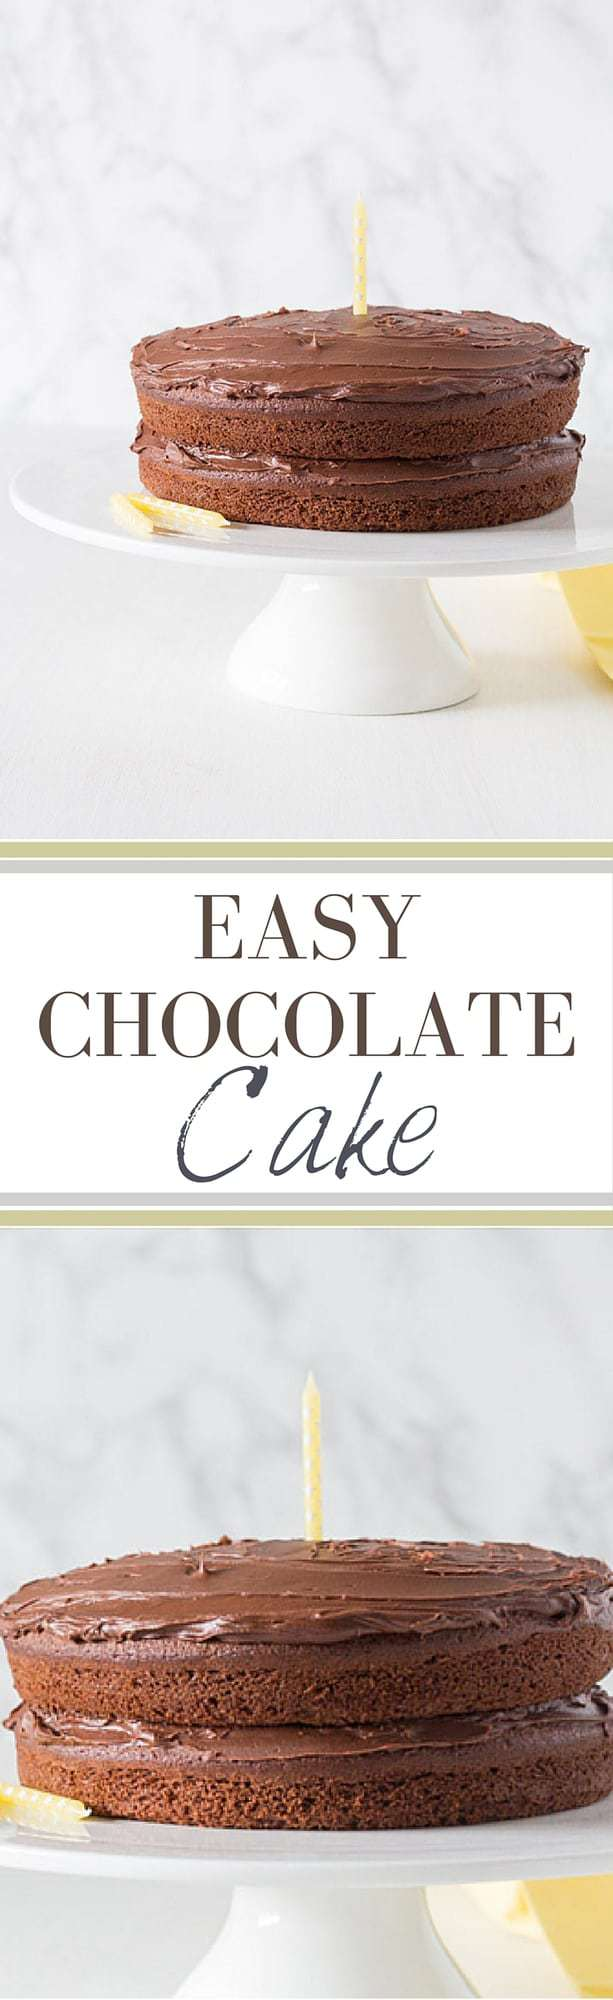 Easy Chocolate Cake Recipe | Recipes From A Pantry